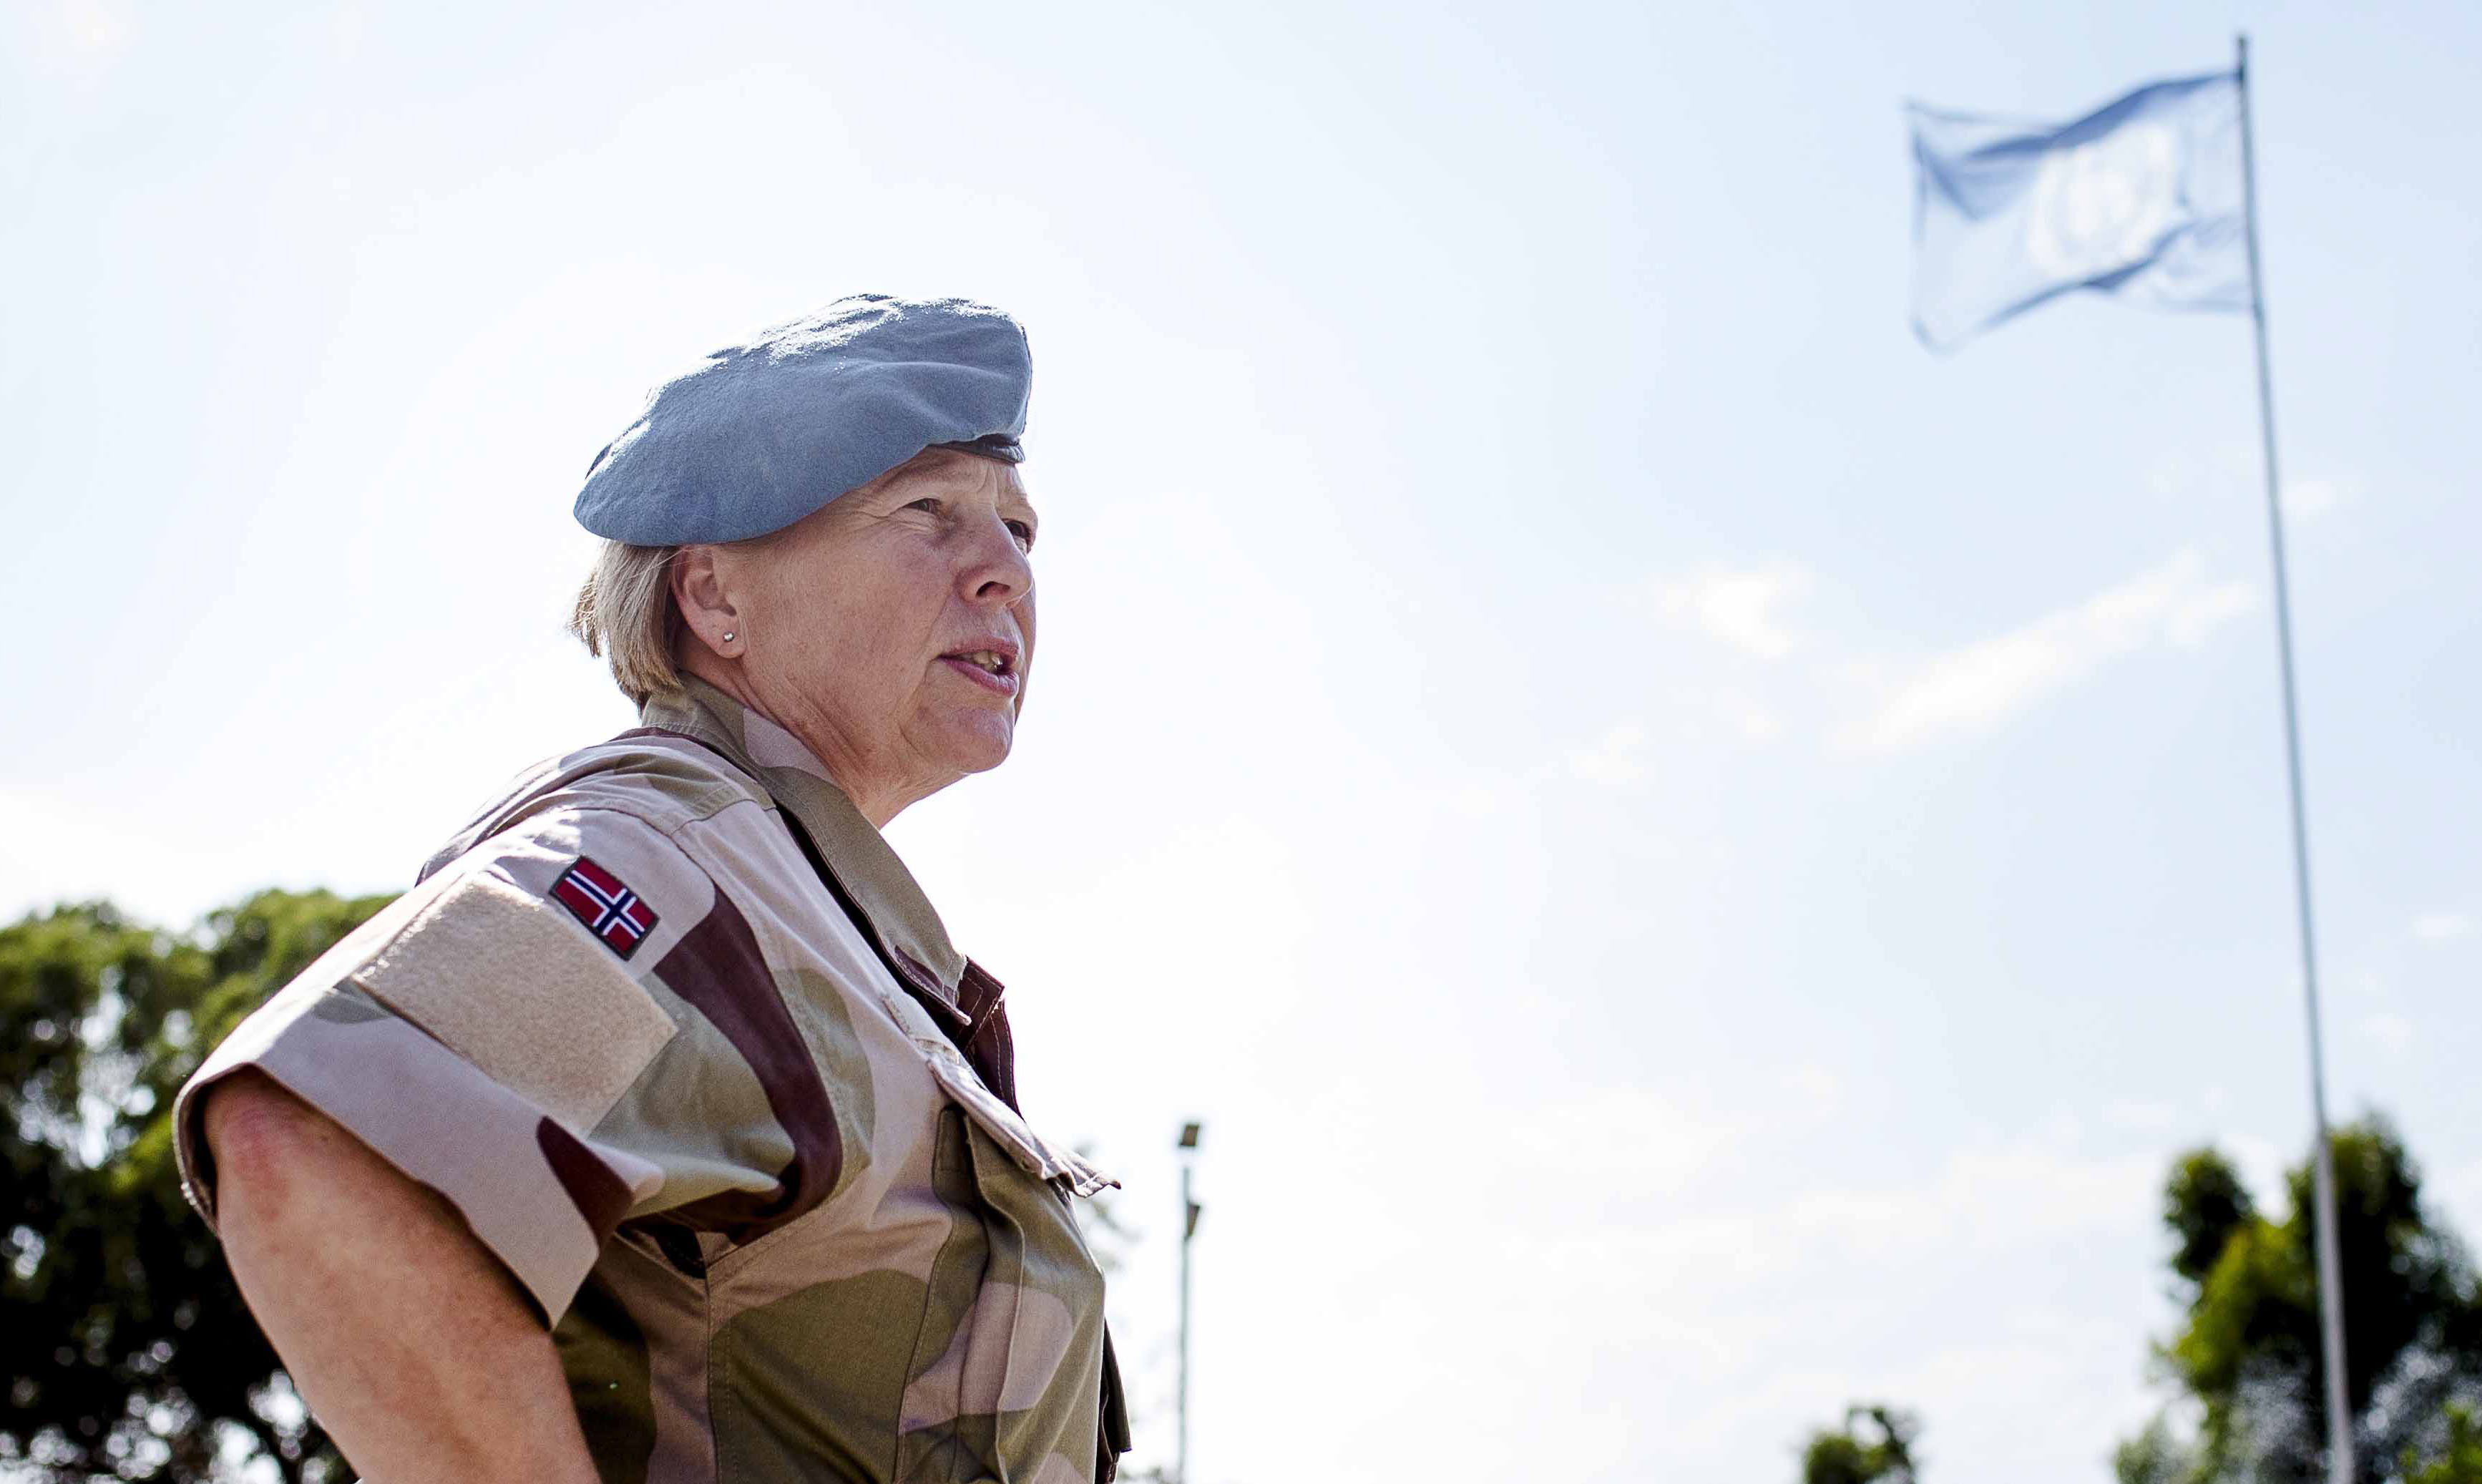 Gender equality in war and peace